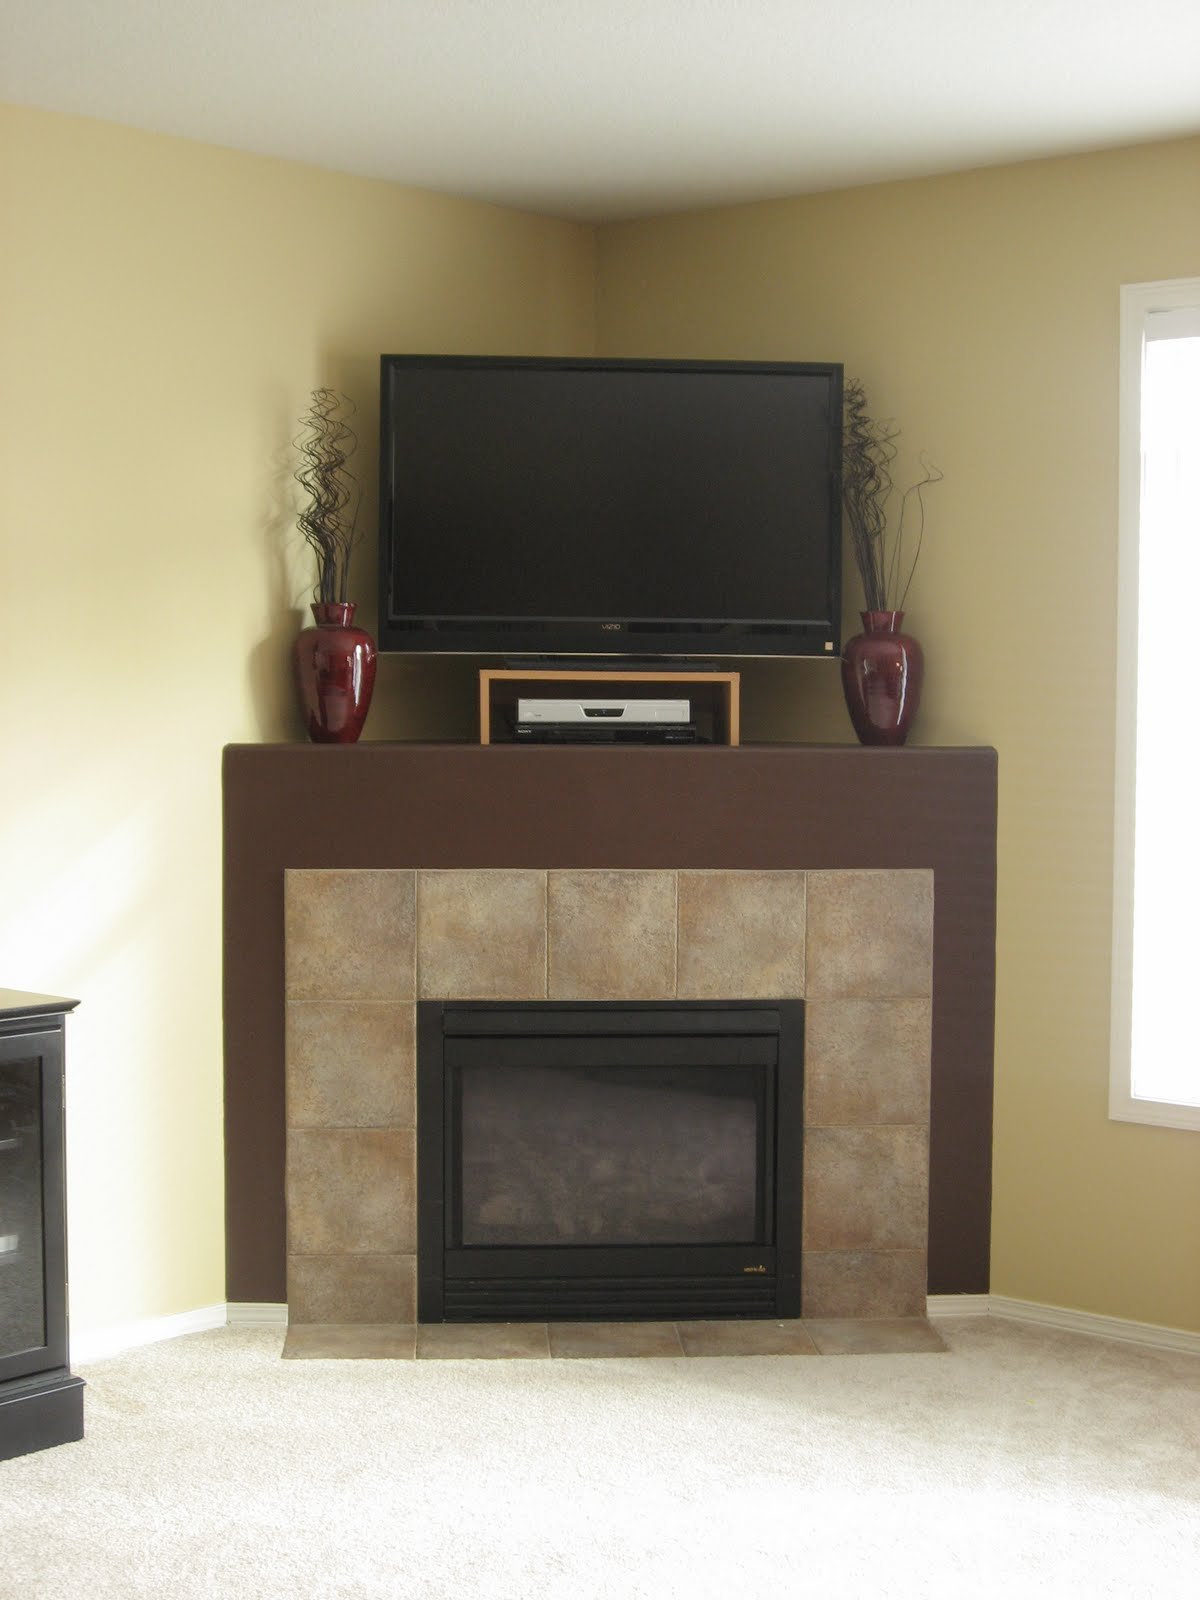 Corner Fireplace Decorating Ideas | DECORATING IDEAS